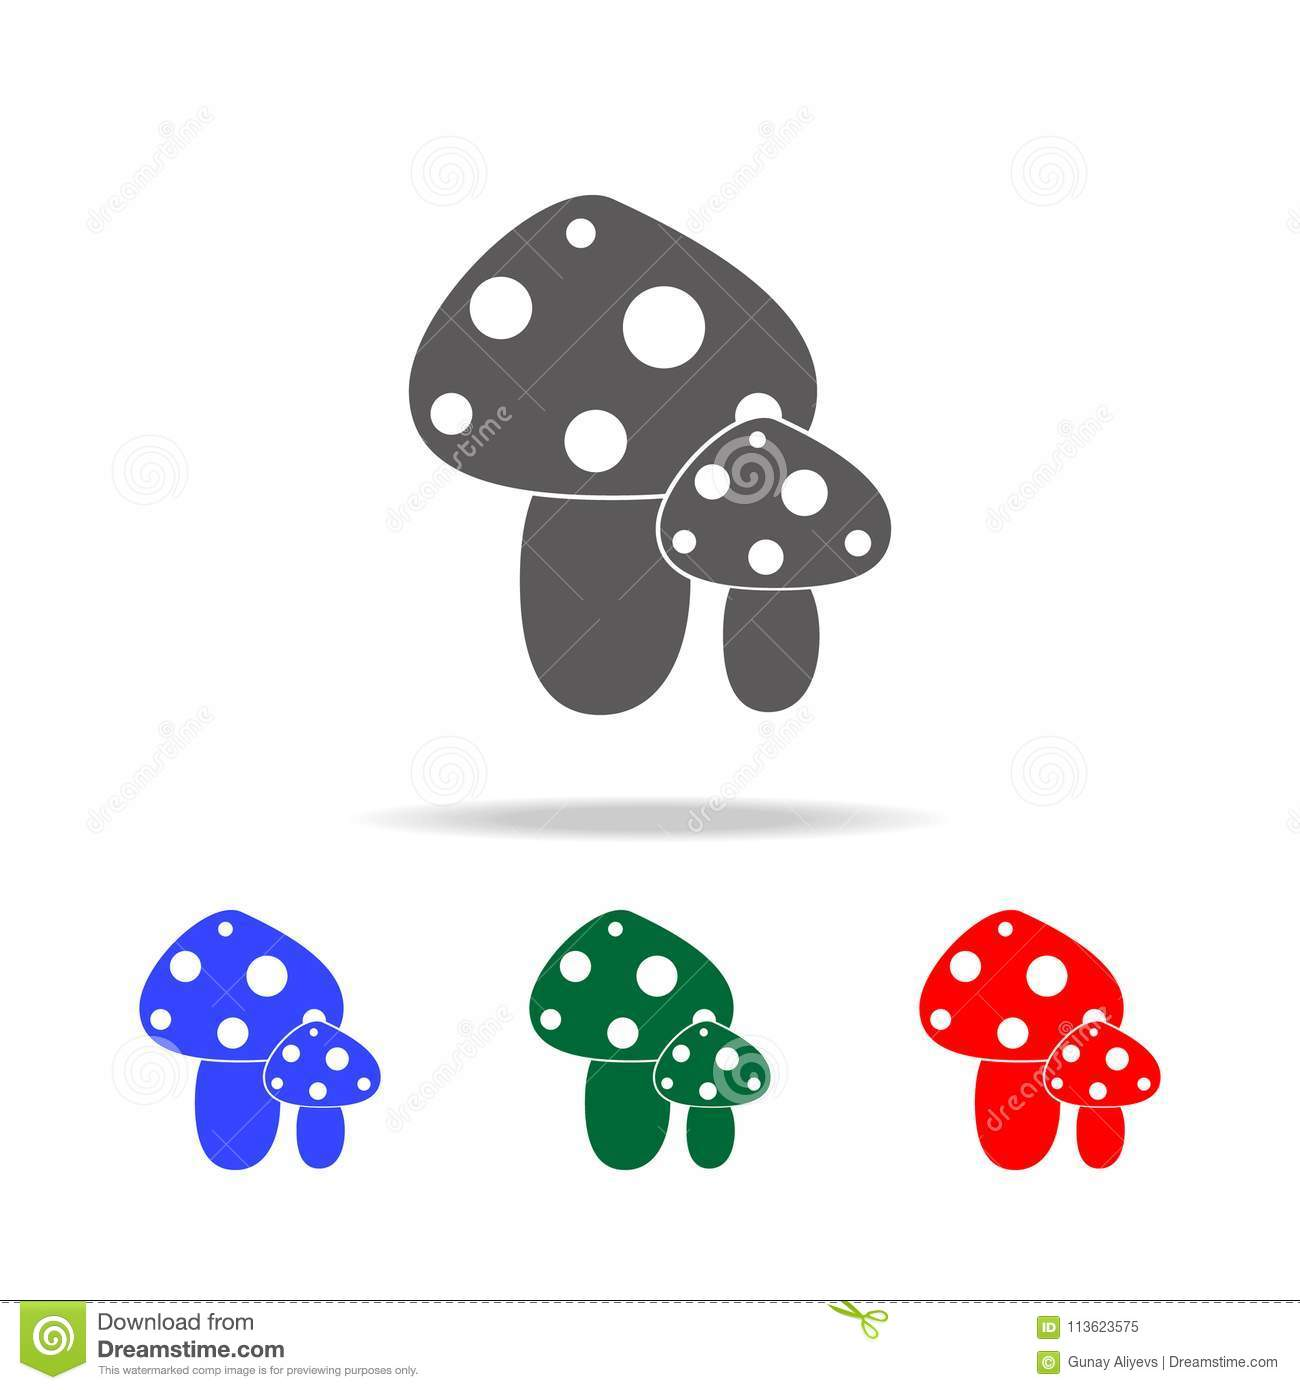 poisonous mushroom icon. Elements of human weakness and addiction multi colored icons. Premium quality graphic design icon. Simple